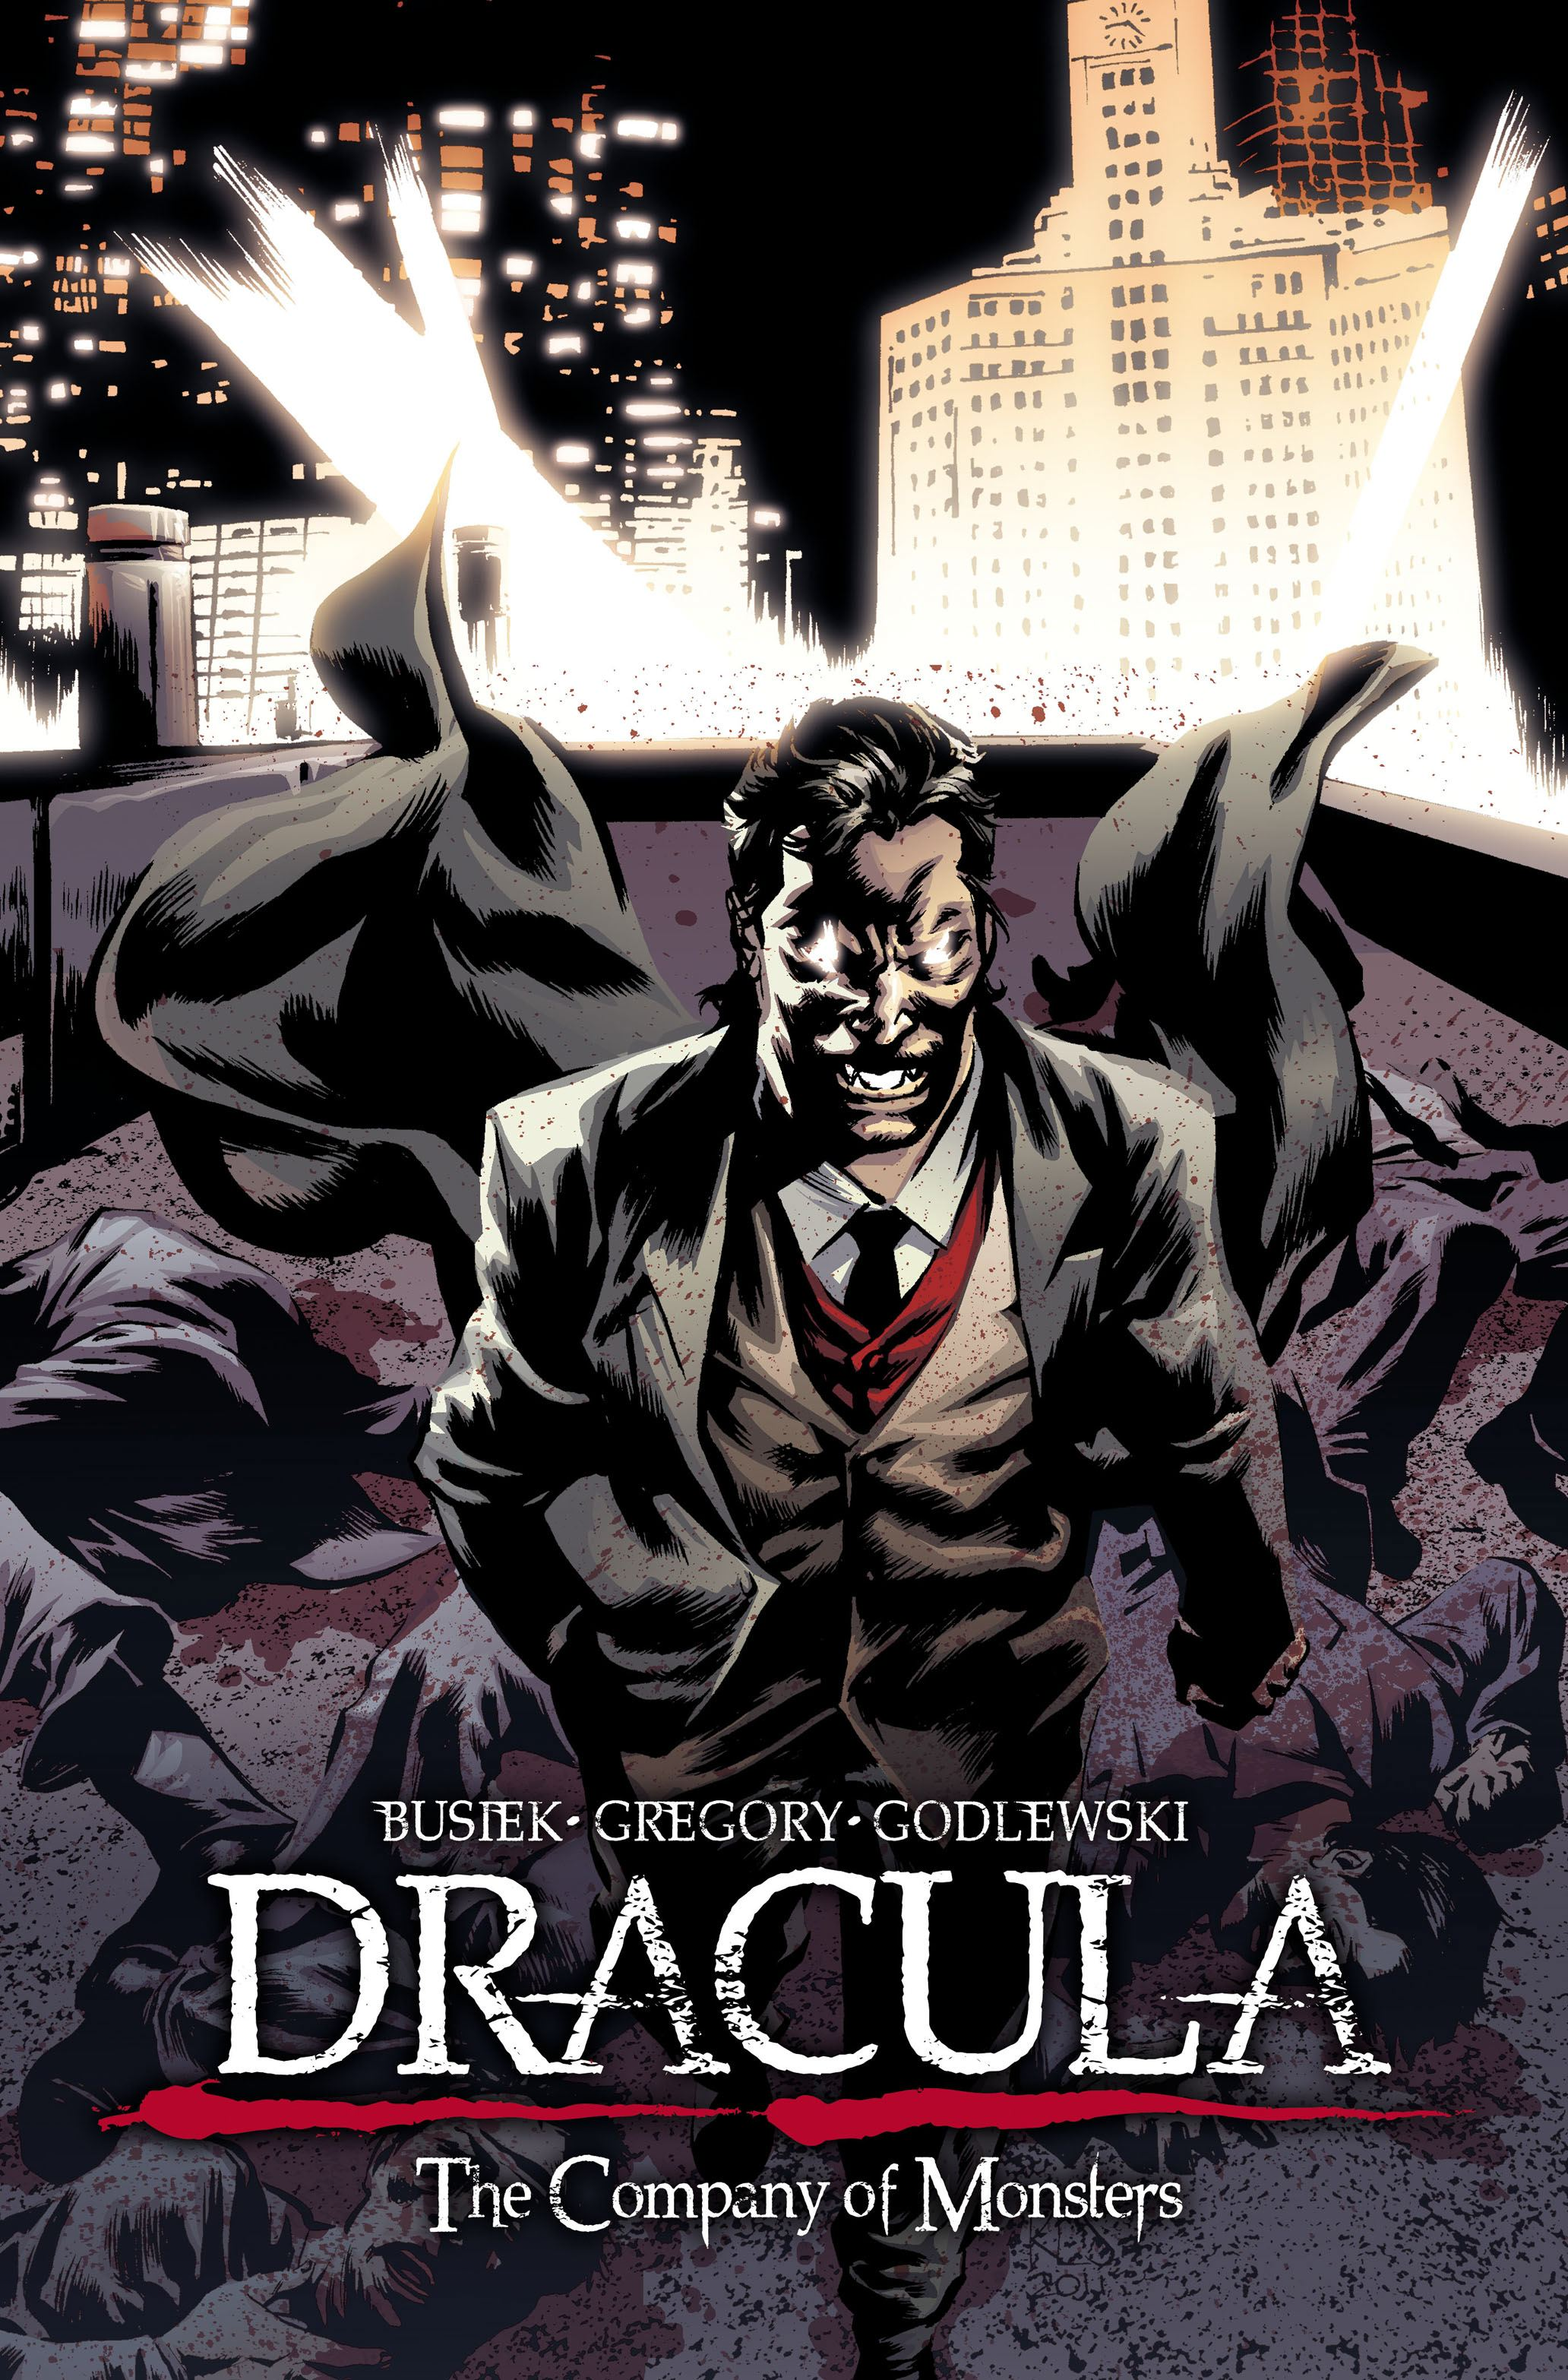 Dracula-the-company-of-monsters-vol-3-9781608860586_hr